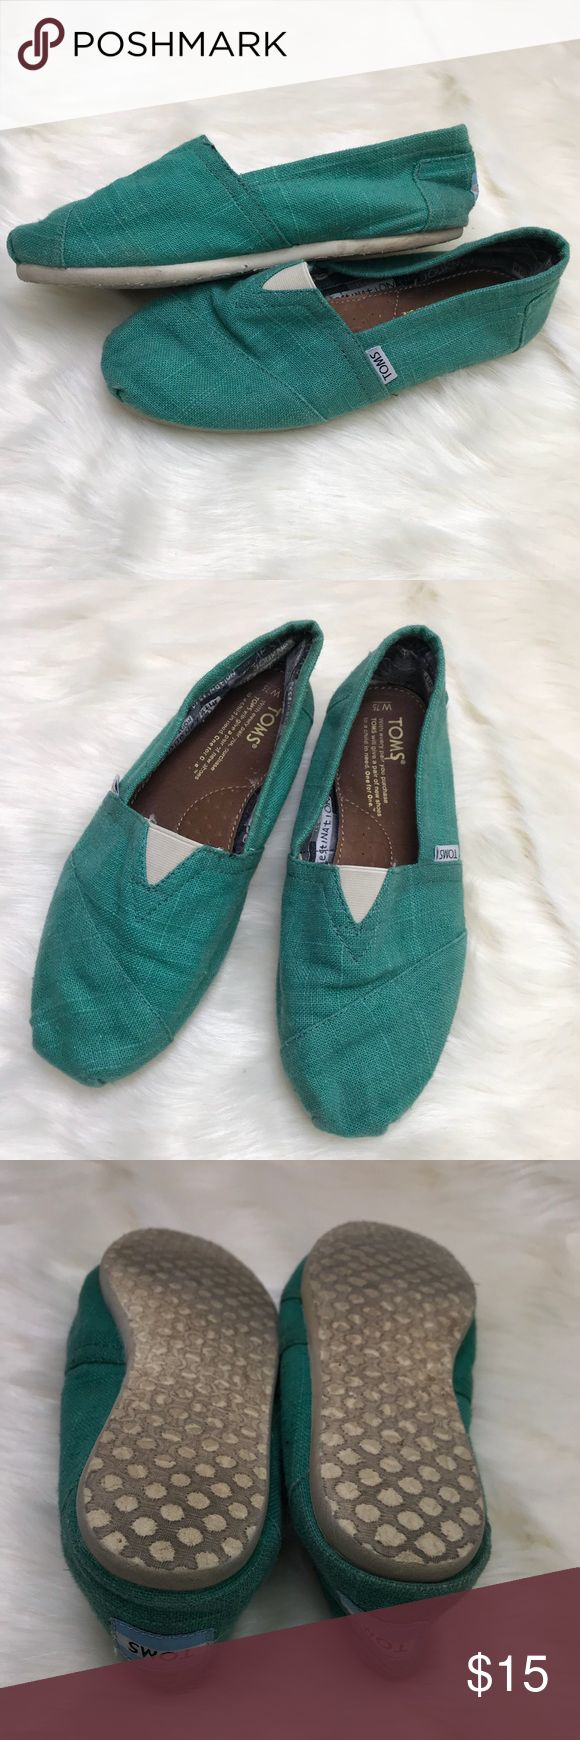 Green TOMS as 7 Women's so 7 TOMS- lightly worn but a lot of life left in them! Toms Shoes Flats & Loafers